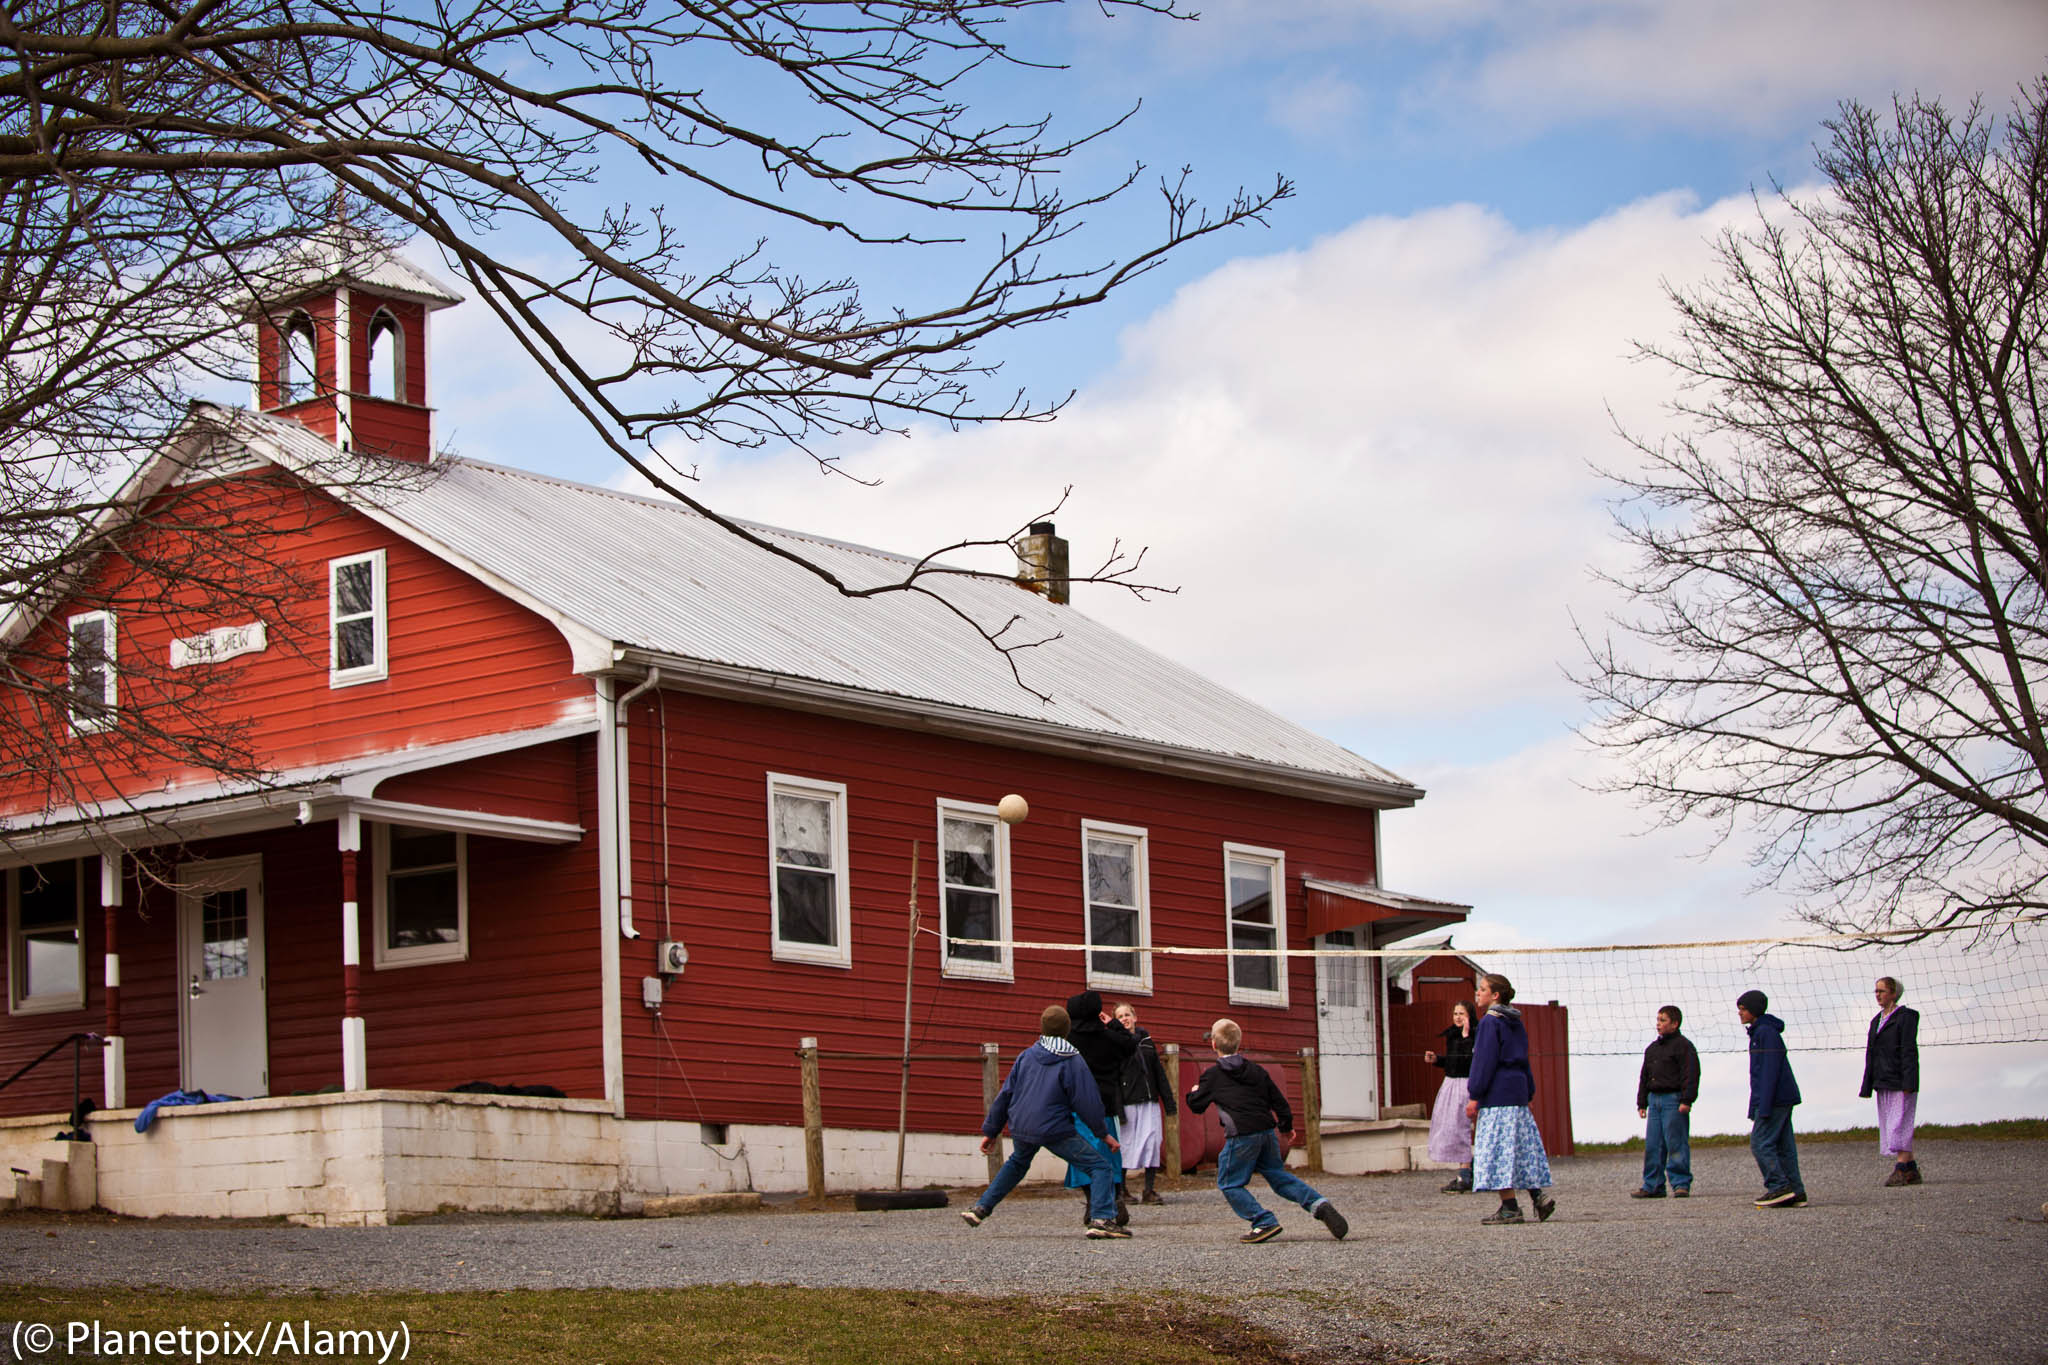 Amish children playing volleyball outside red schoolhouse (© Planetpix/Alamy)